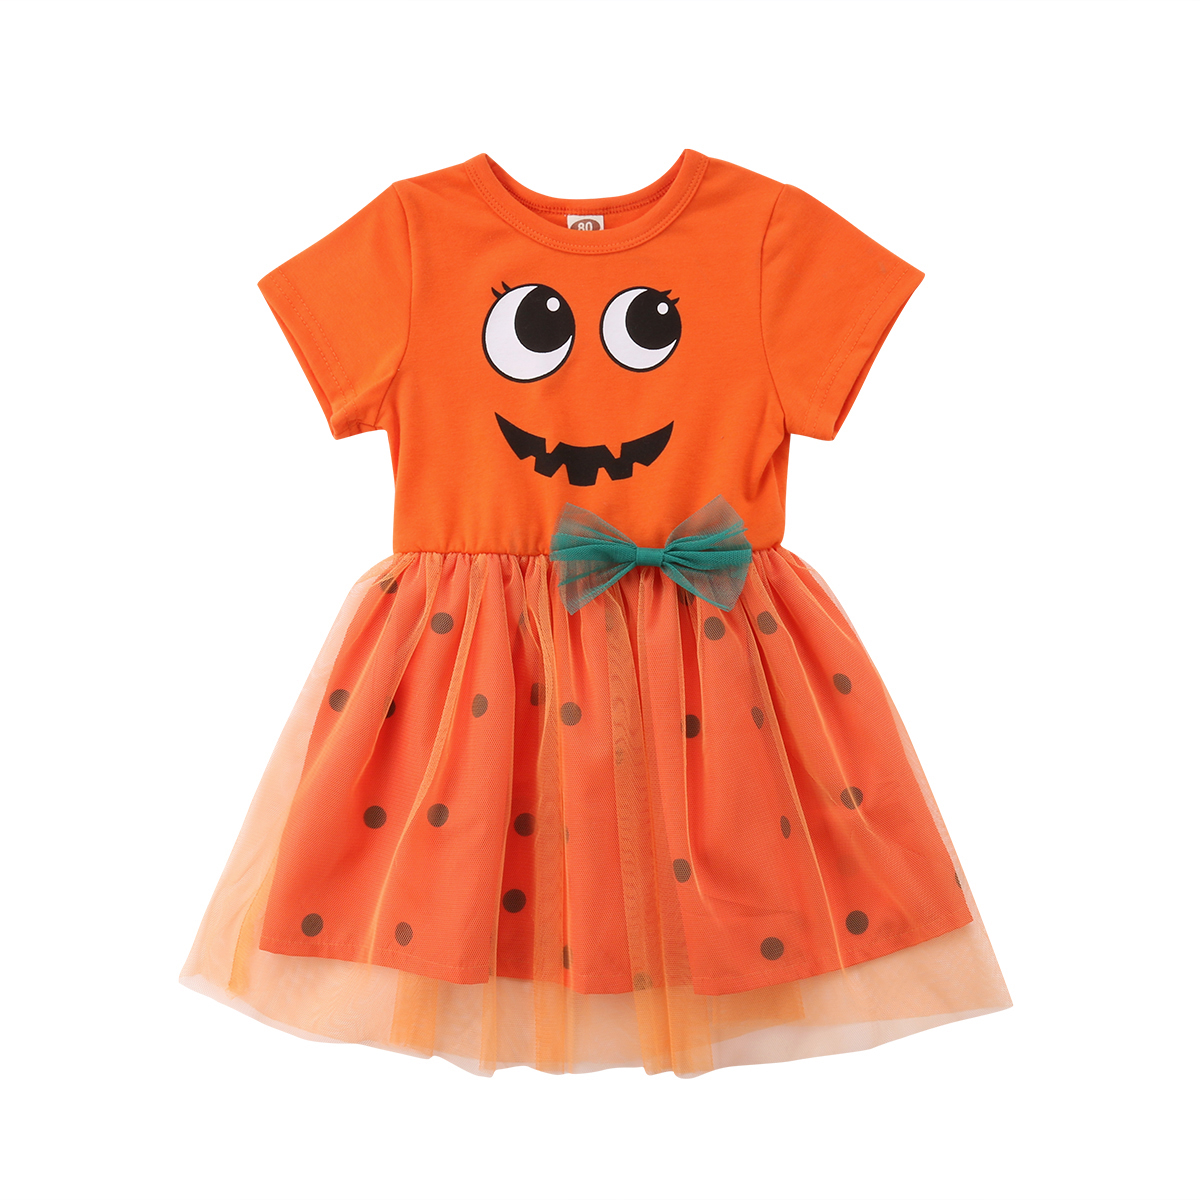 New Girls Pumpkin Fairy Halloween Costume Dress Outfits Little Girl Party Fancy Dresses Clothes Cosplay hot new year children girls fancy cosplay dress snow white princess dress for halloween christmas costume clothes party dresses